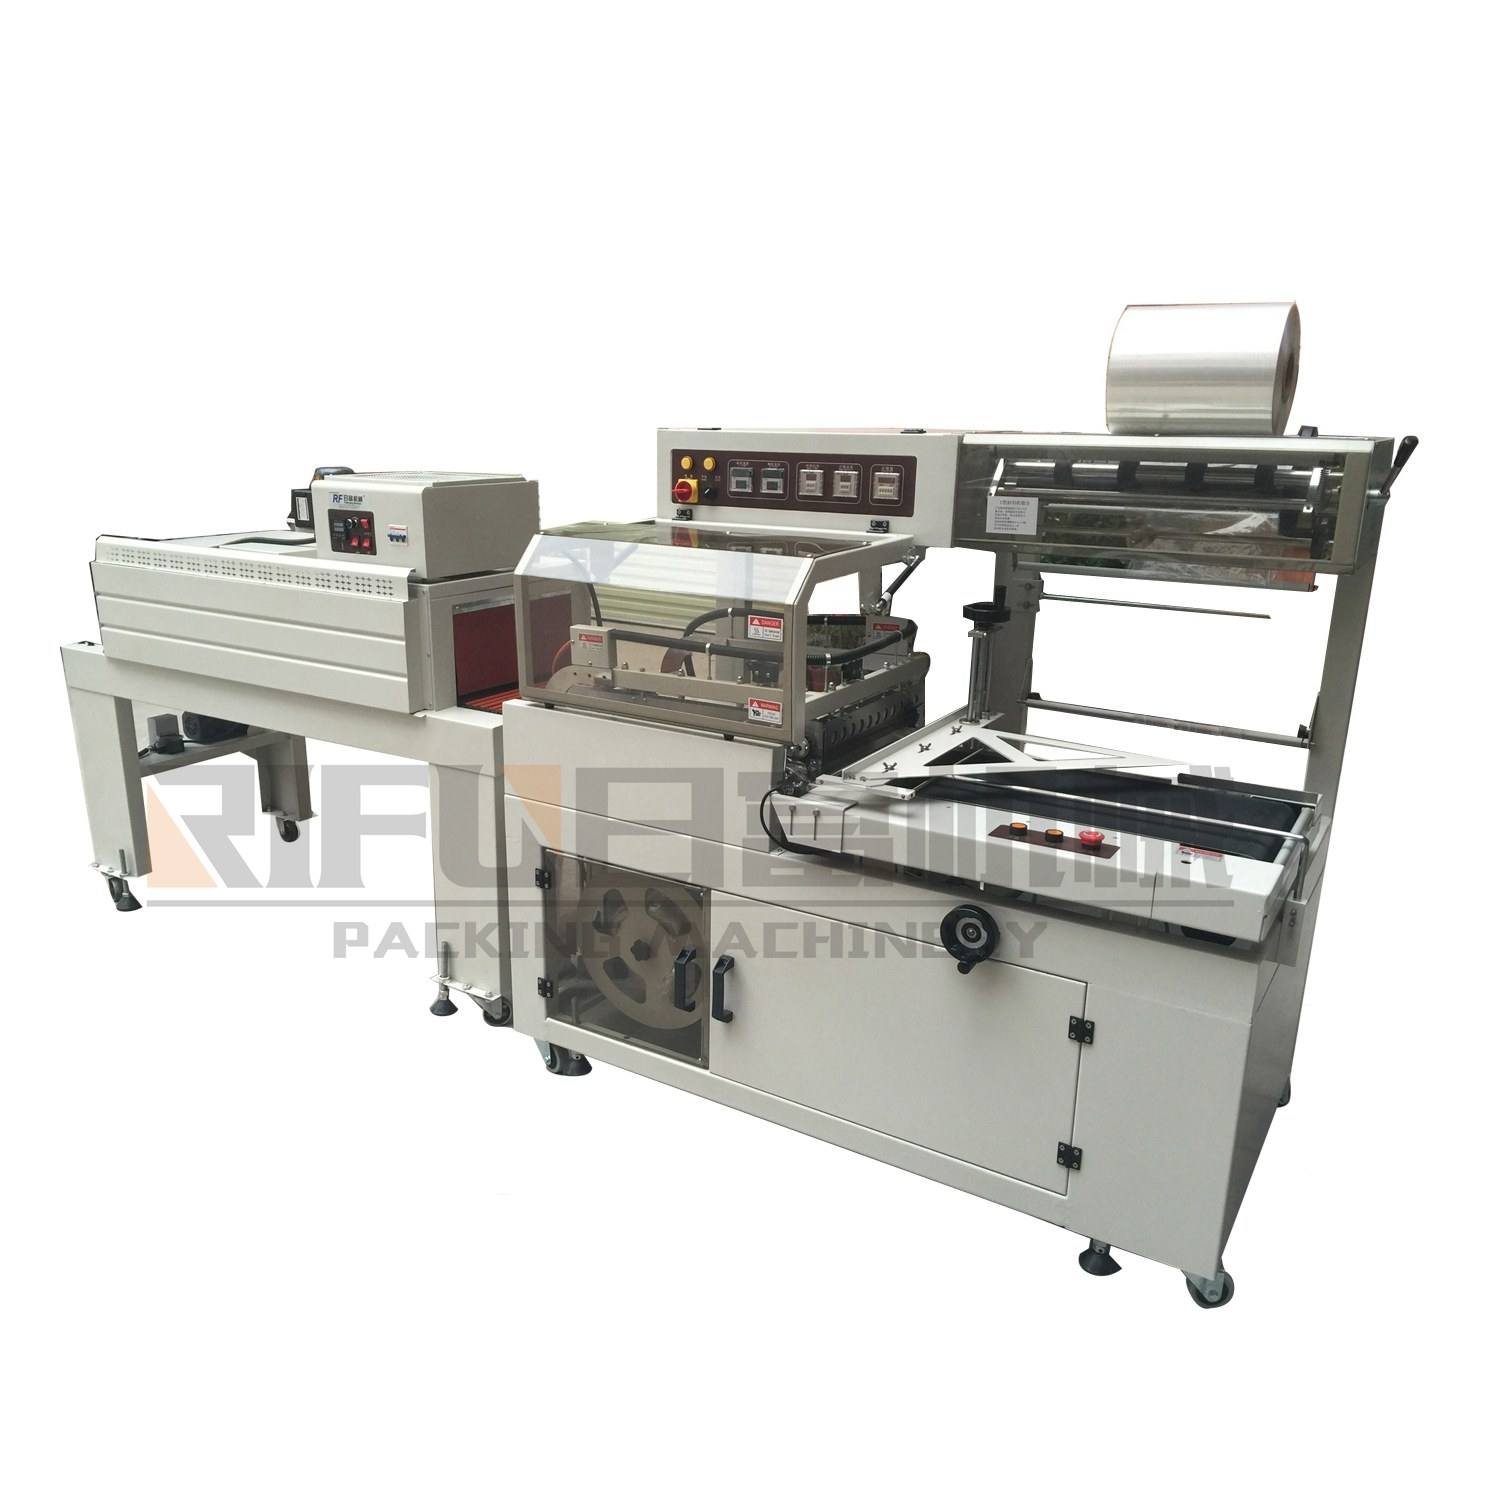 Small semi automatic heat shrink wrapping machine for carton box